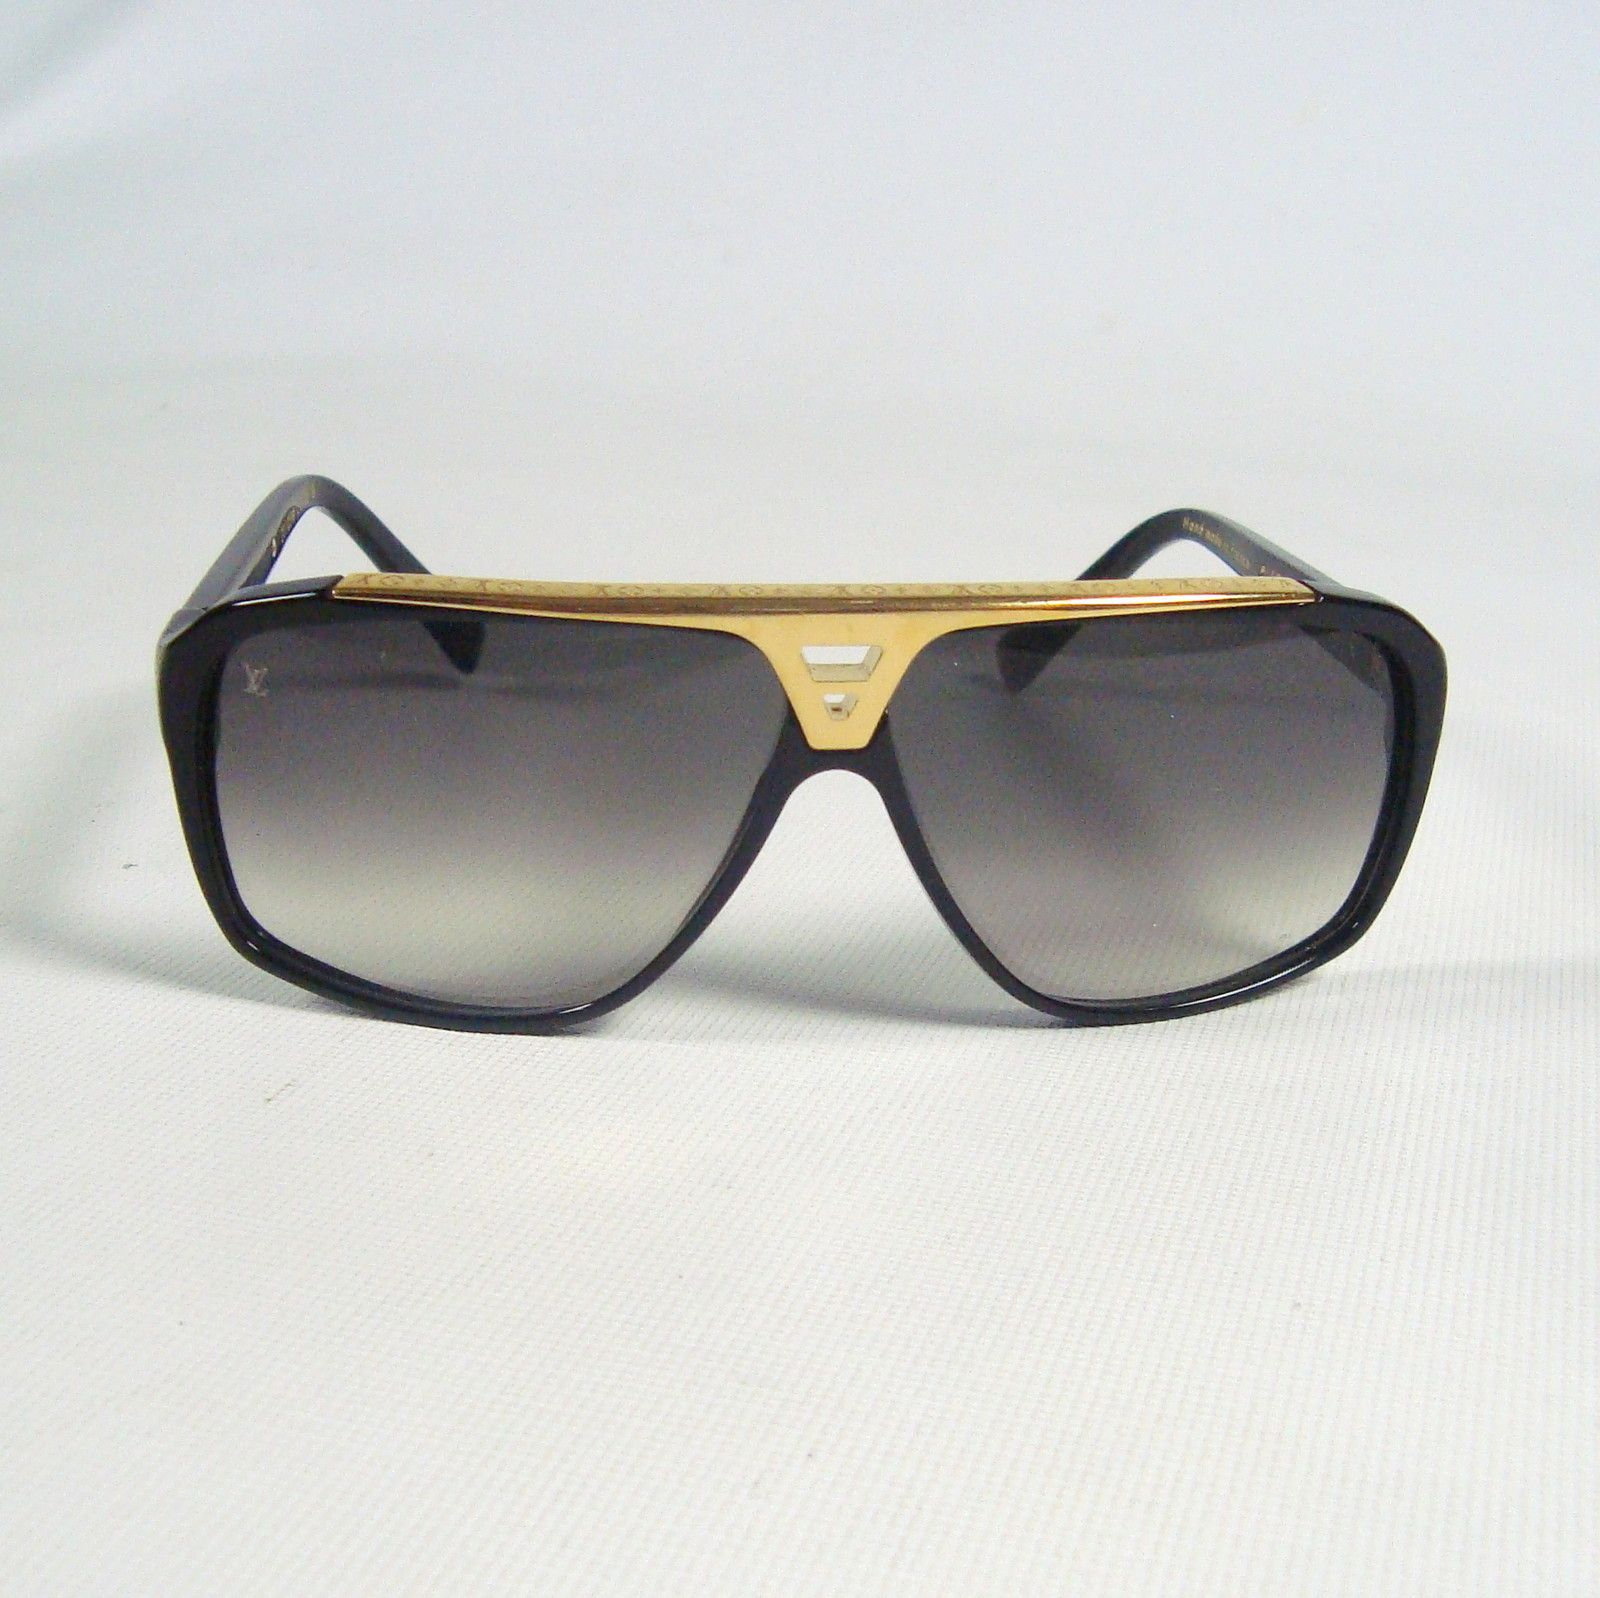 941cc78d0b55c Louis Vuitton Sunglasses (Men's Pre-owned Black & Gold Aviator Sun ...